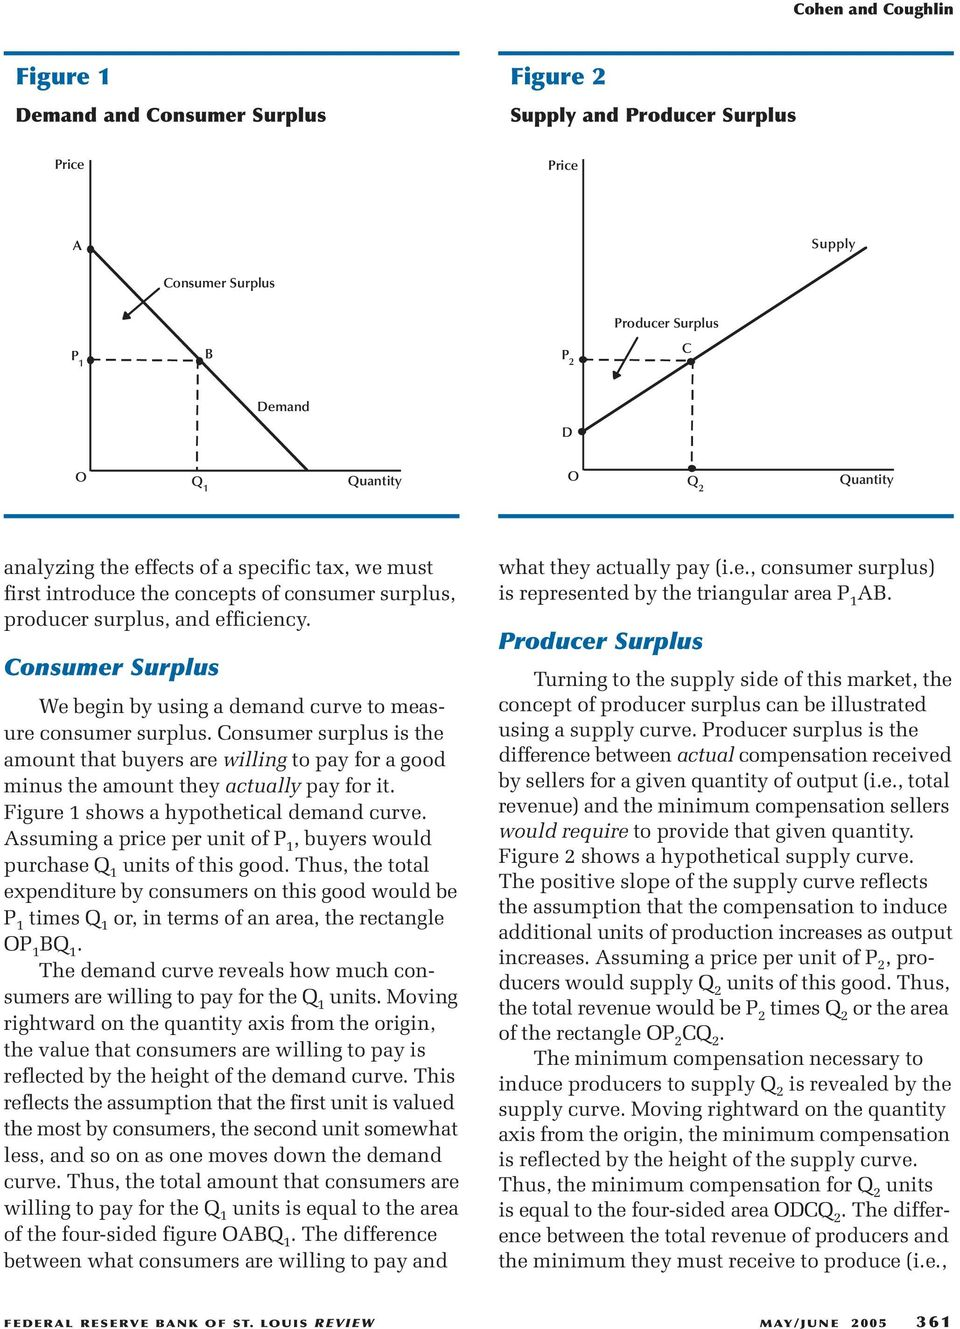 Consumer surplus is the amount that buyers are willing to pay for a good minus the amount they actually pay for it. Figure 1 shows a hypothetical demand curve.